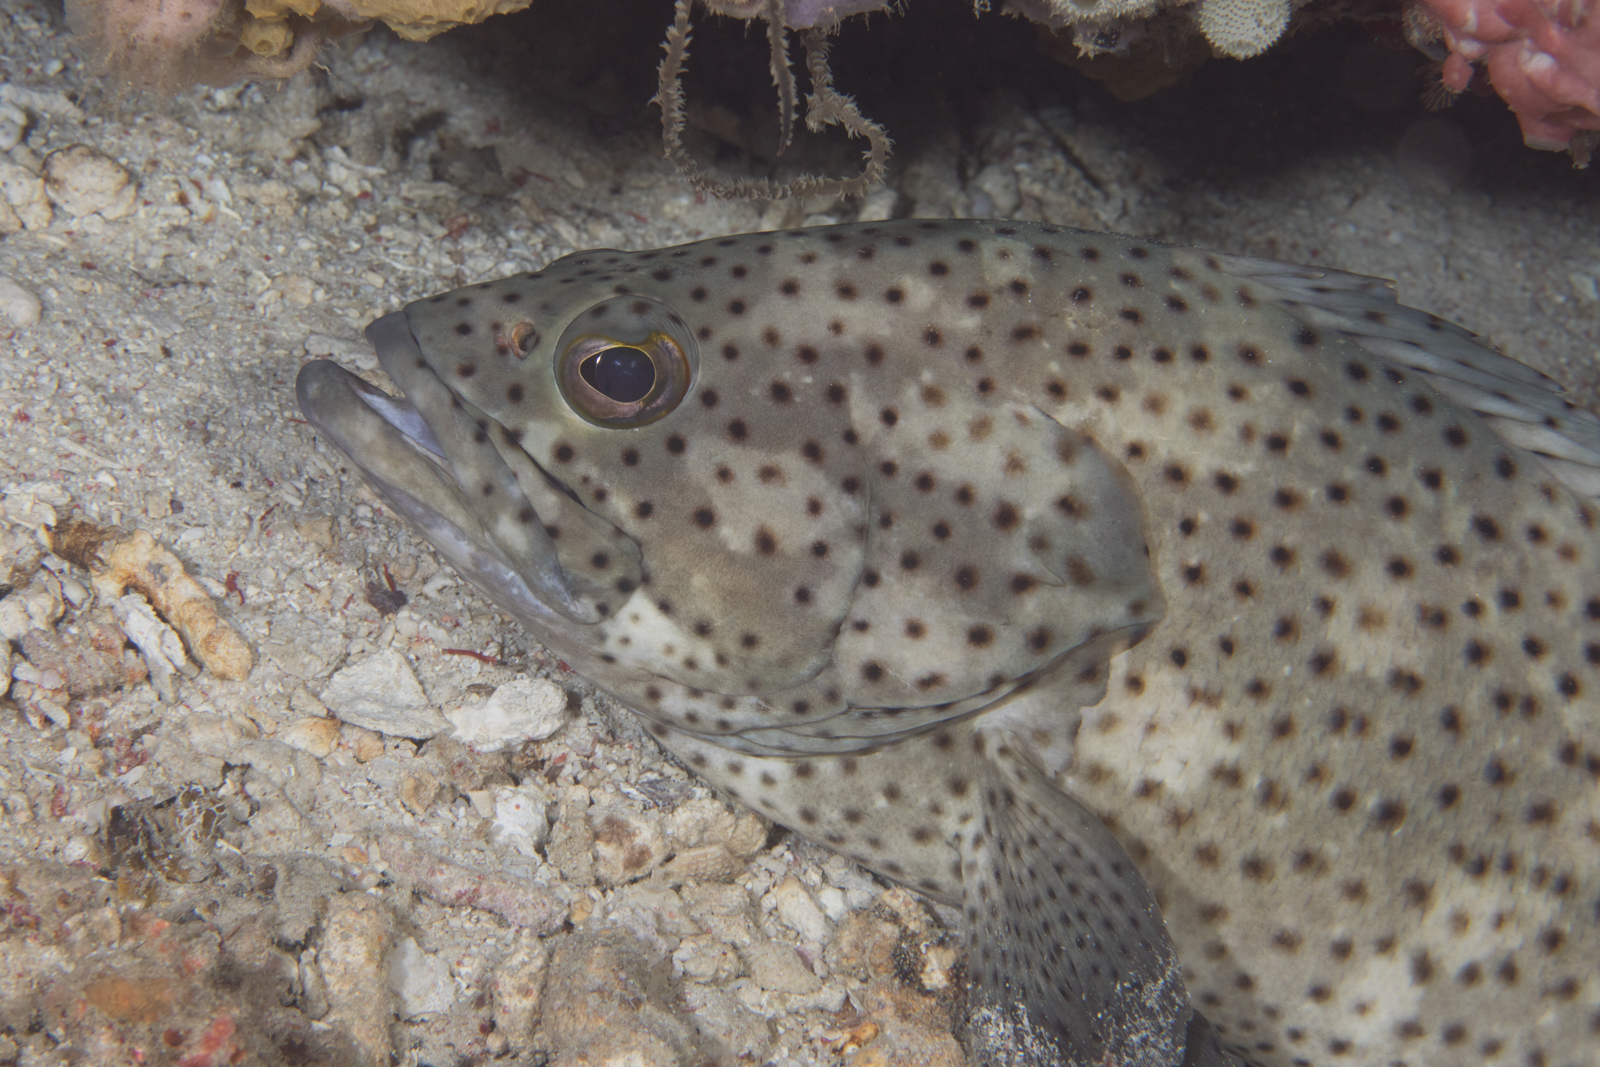 Image of coral rockcod